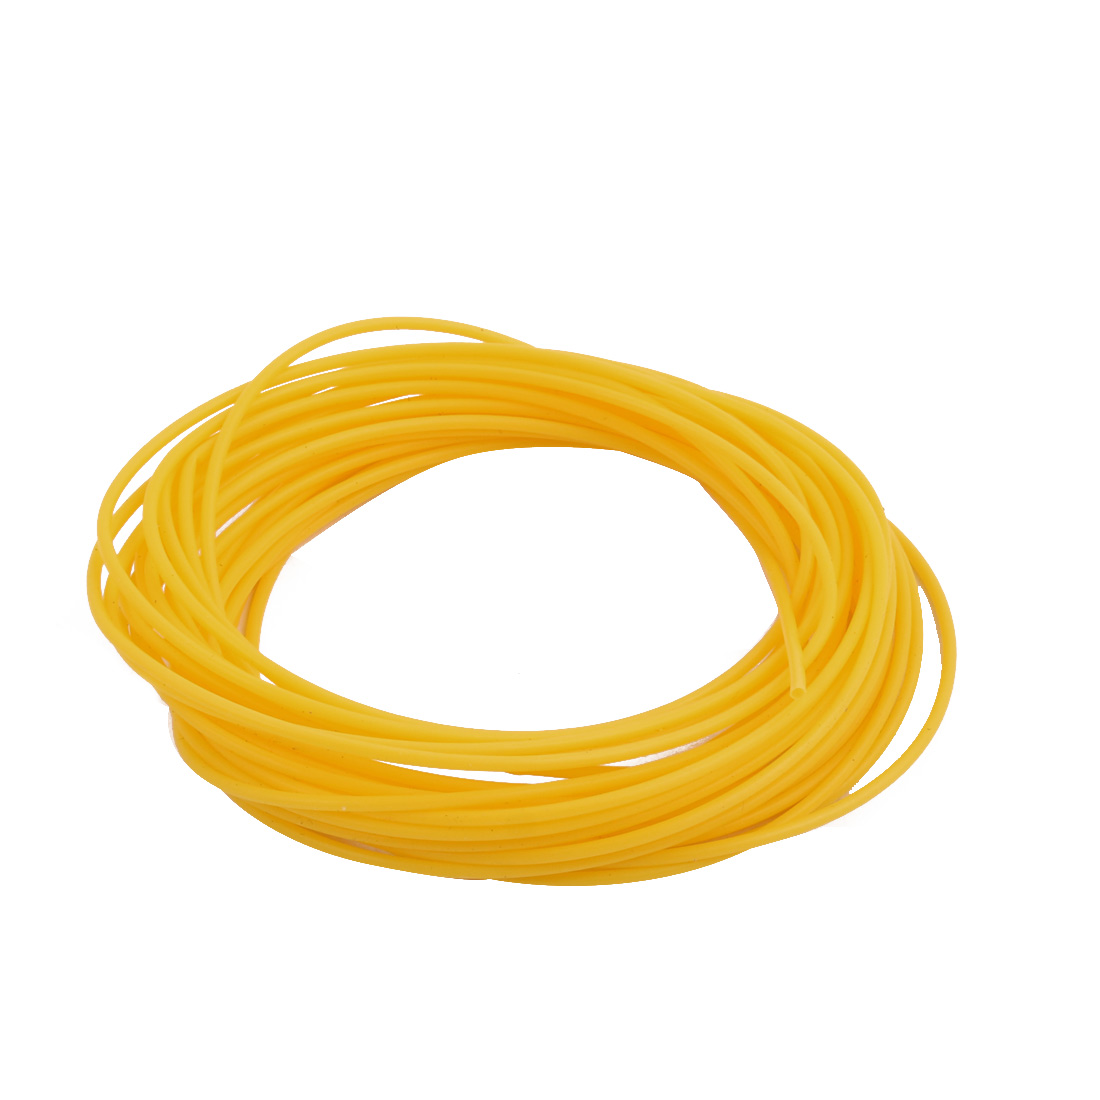 1.07mmx1.37mm PTFE Resistant High Temperature Yellow Tubing 5 Meters 16.4Ft